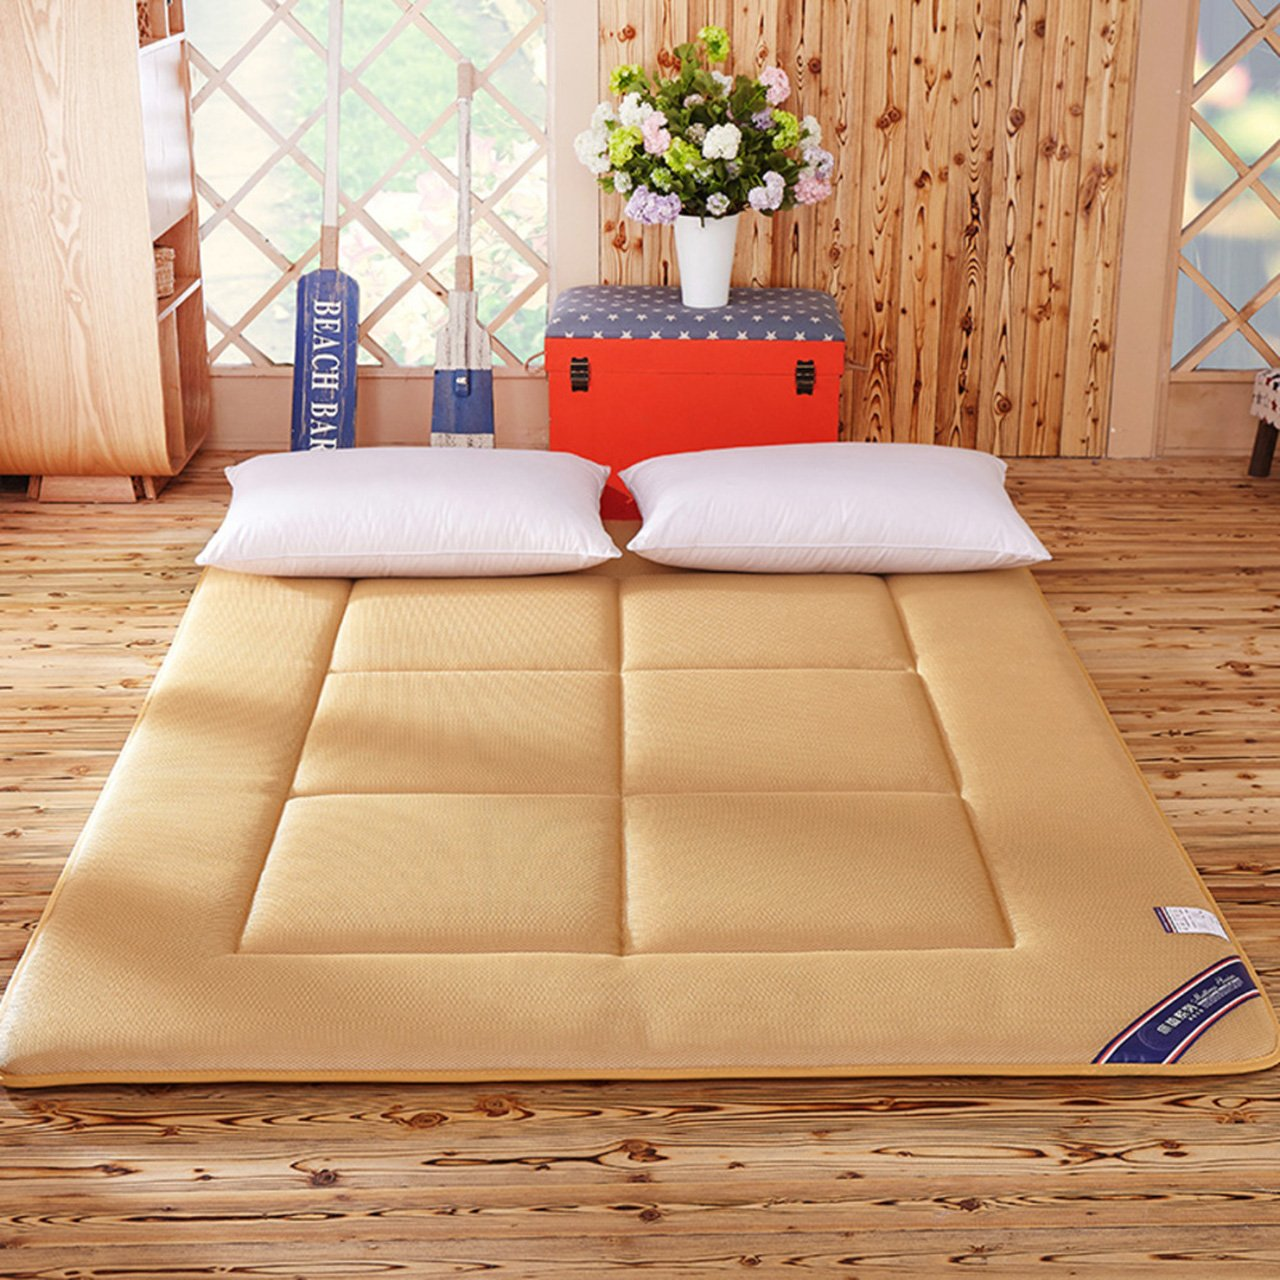 Yellow star Quilted foldable cushion mats,Tatami mattress student dorm futon mattress topper portable sleeping pad thin bed protection pad washable-B 135x200cm(53x79inch)